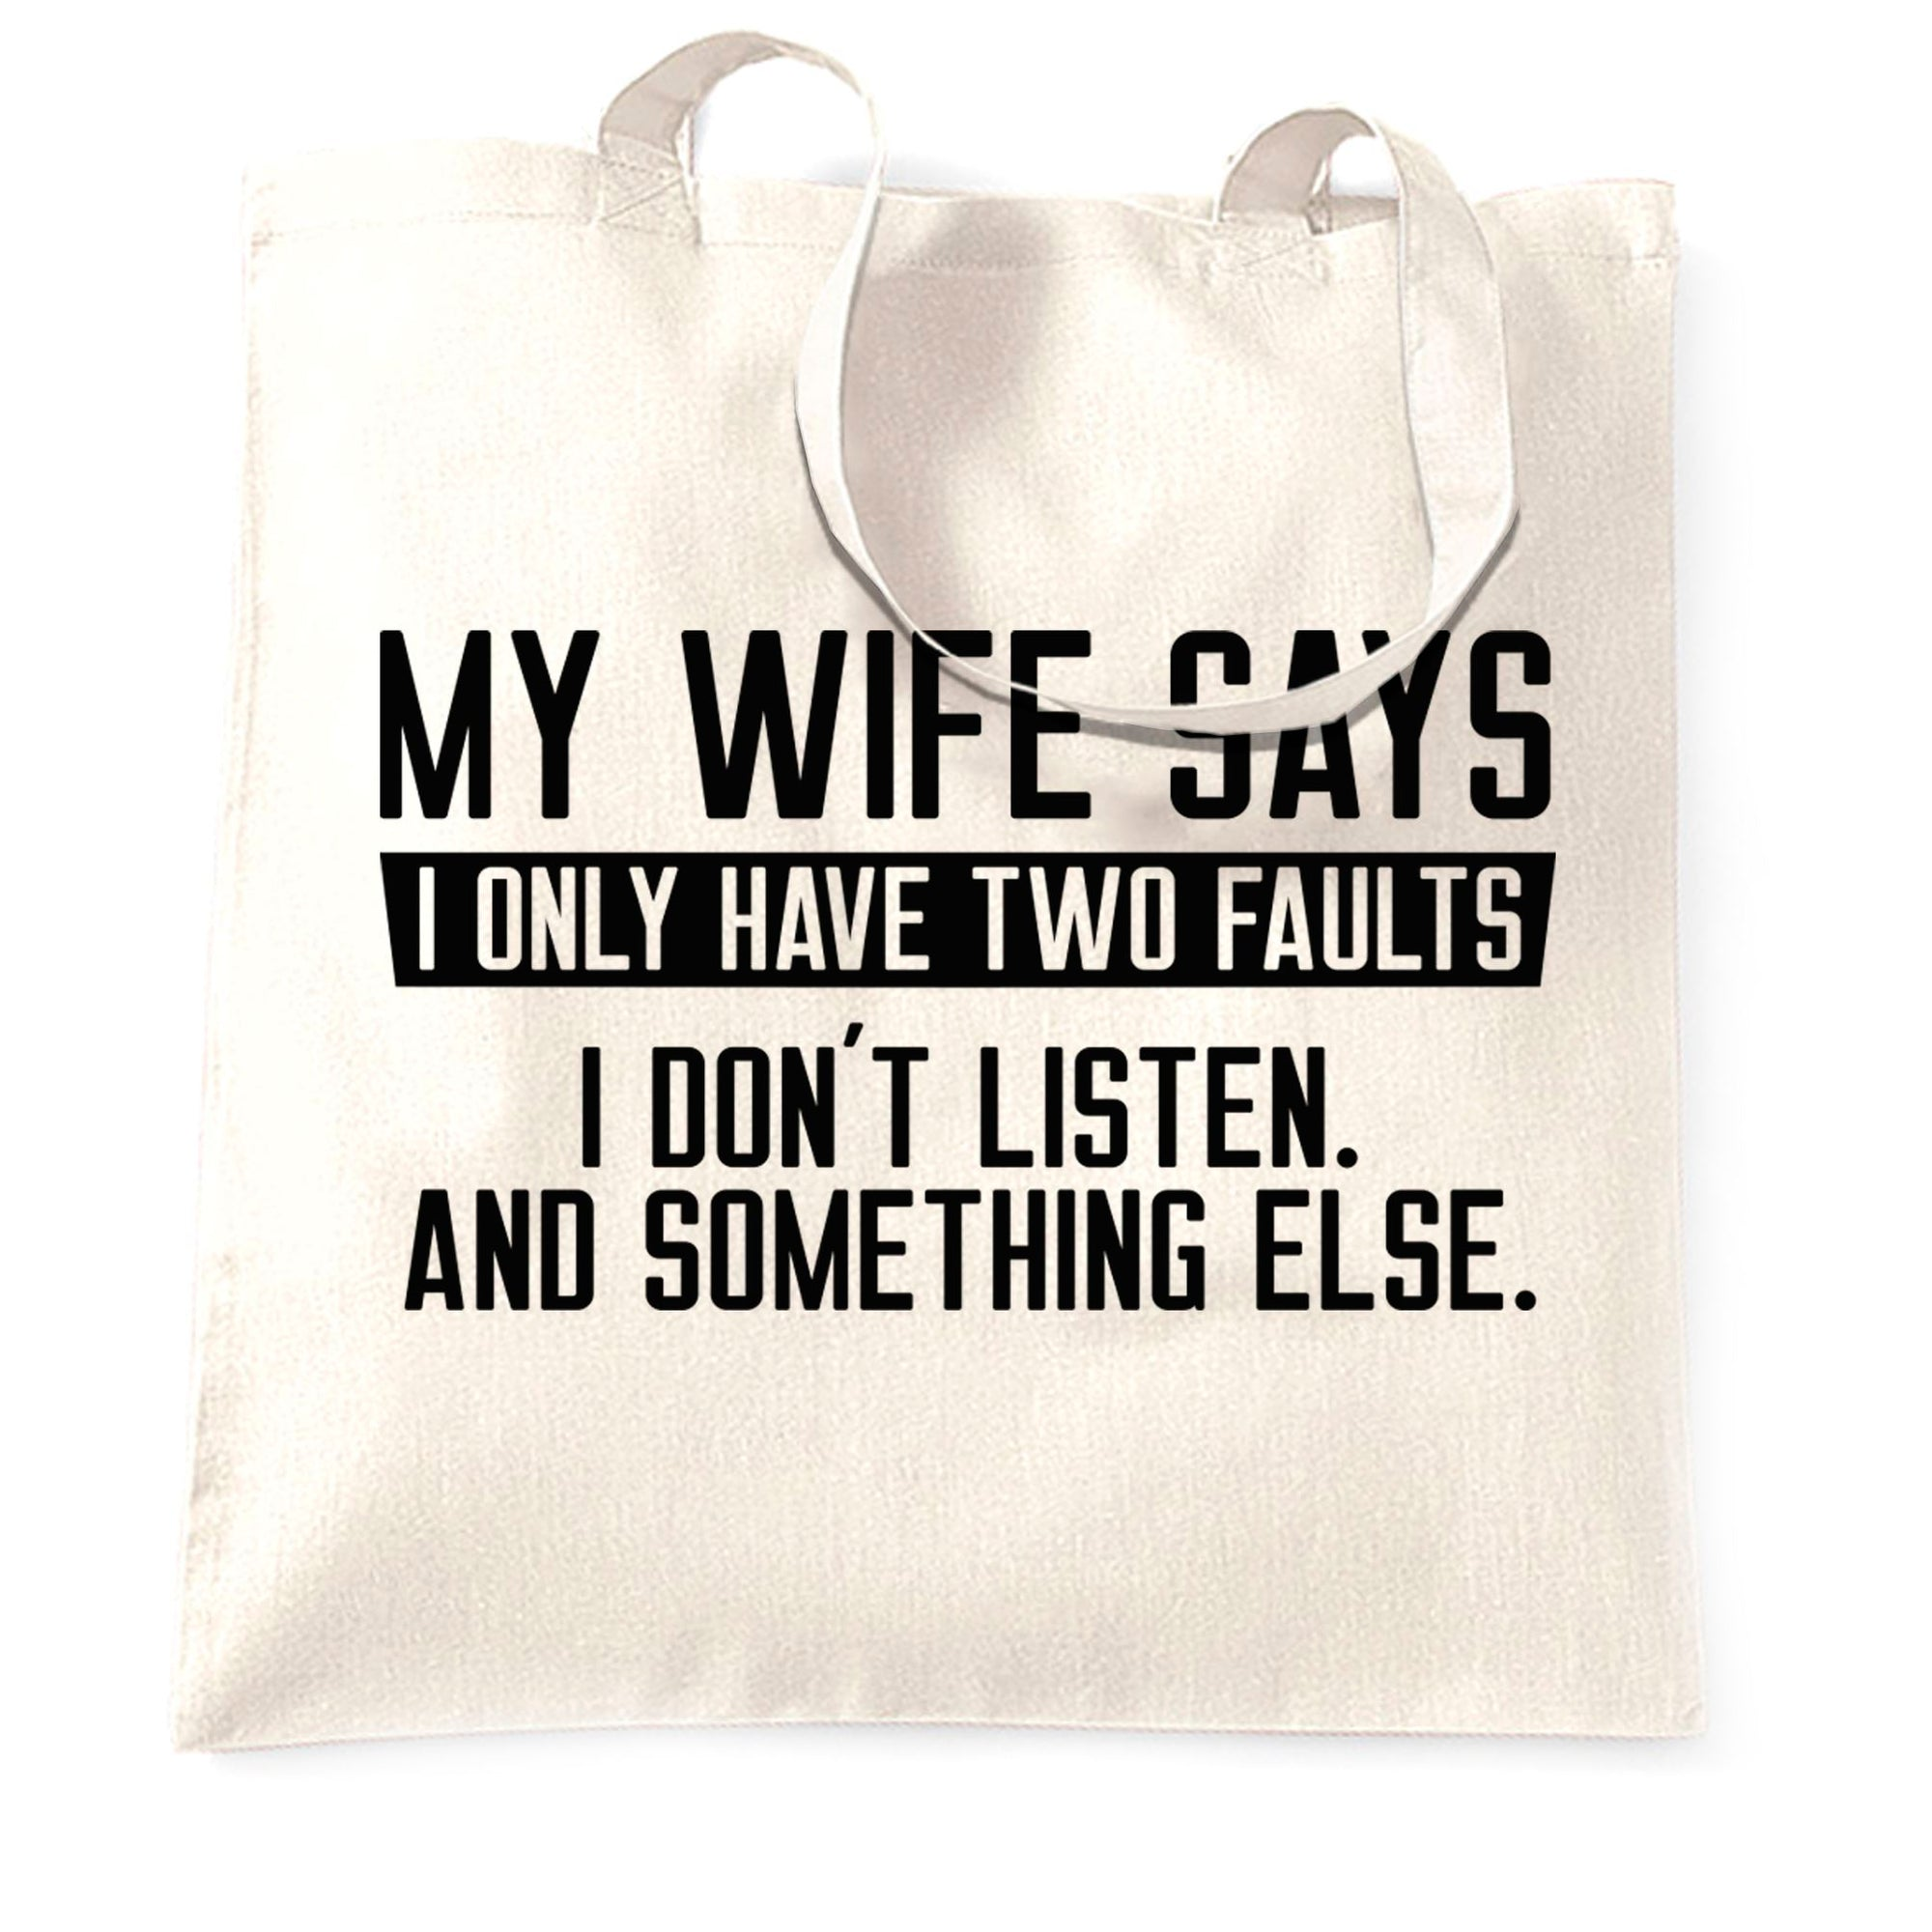 My Wife Says I Don't Listen Funny Tote Bag